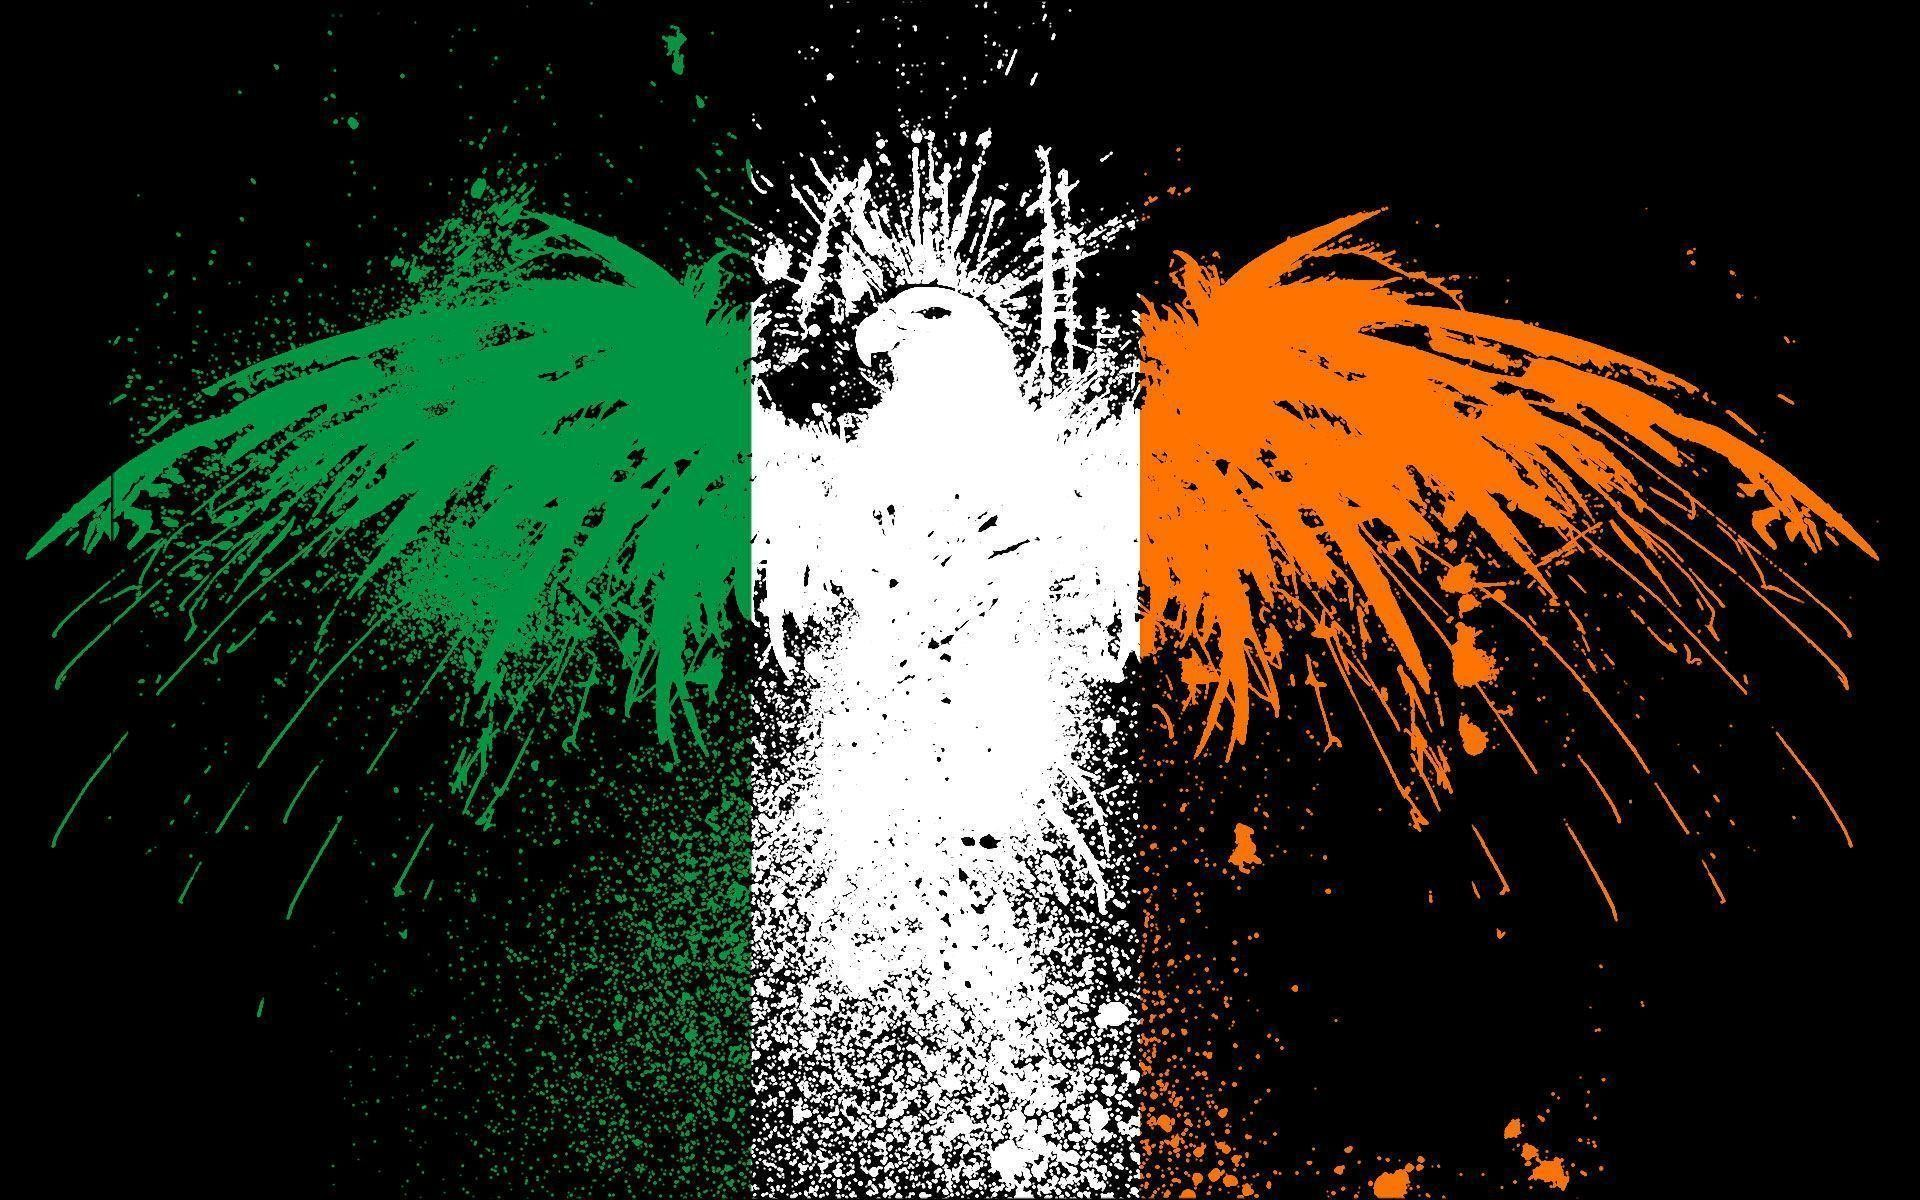 Irish Wallpapers ·â'